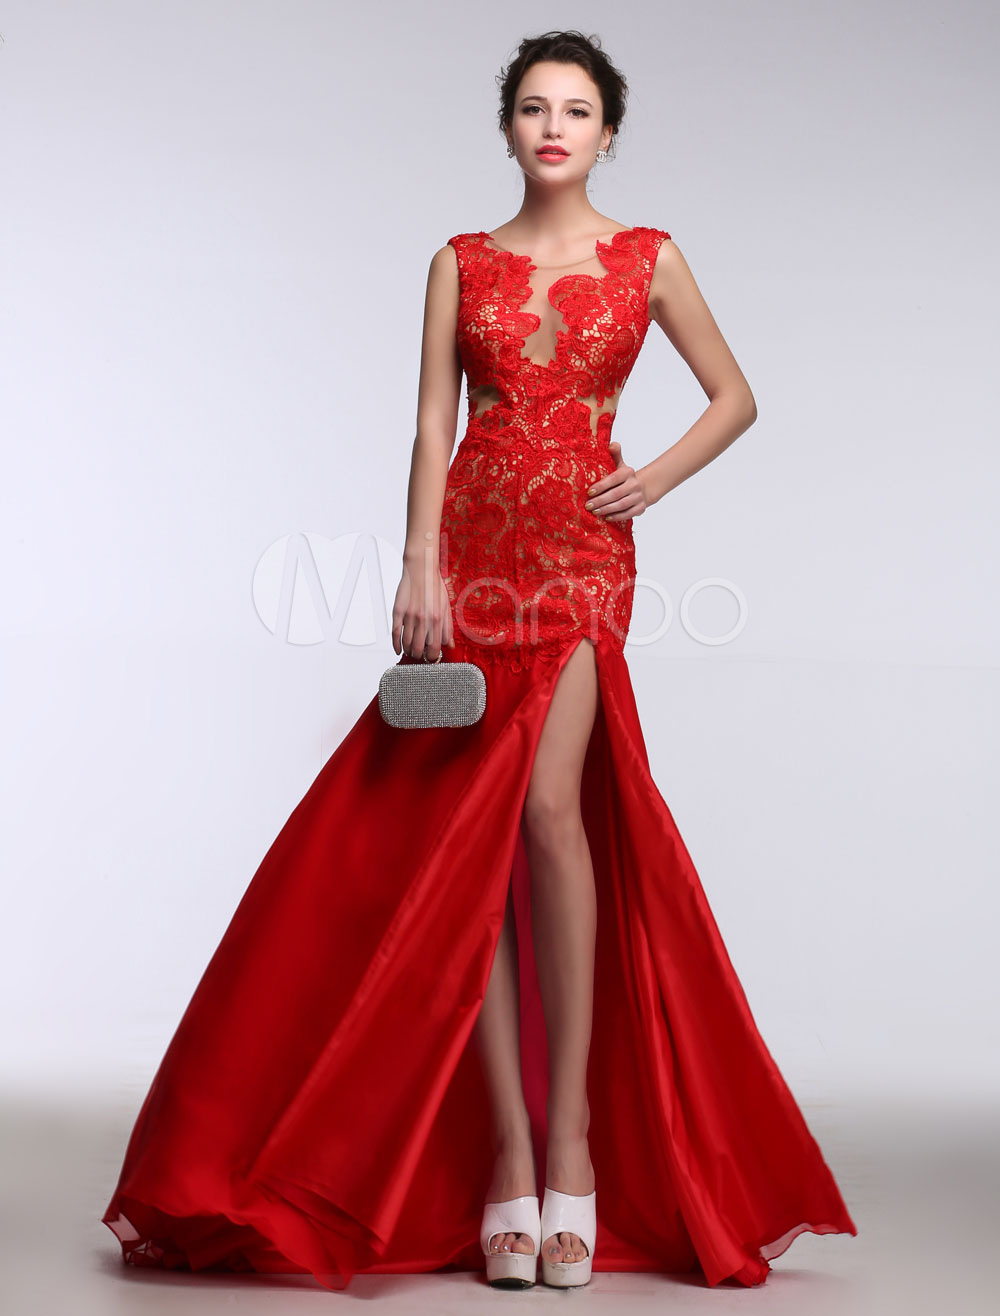 Lace Evening Dress Red Mermaid Occasion Dress Illusion Backless Satin Split Party Dress With Brush Train (Wedding Evening Dresses) photo